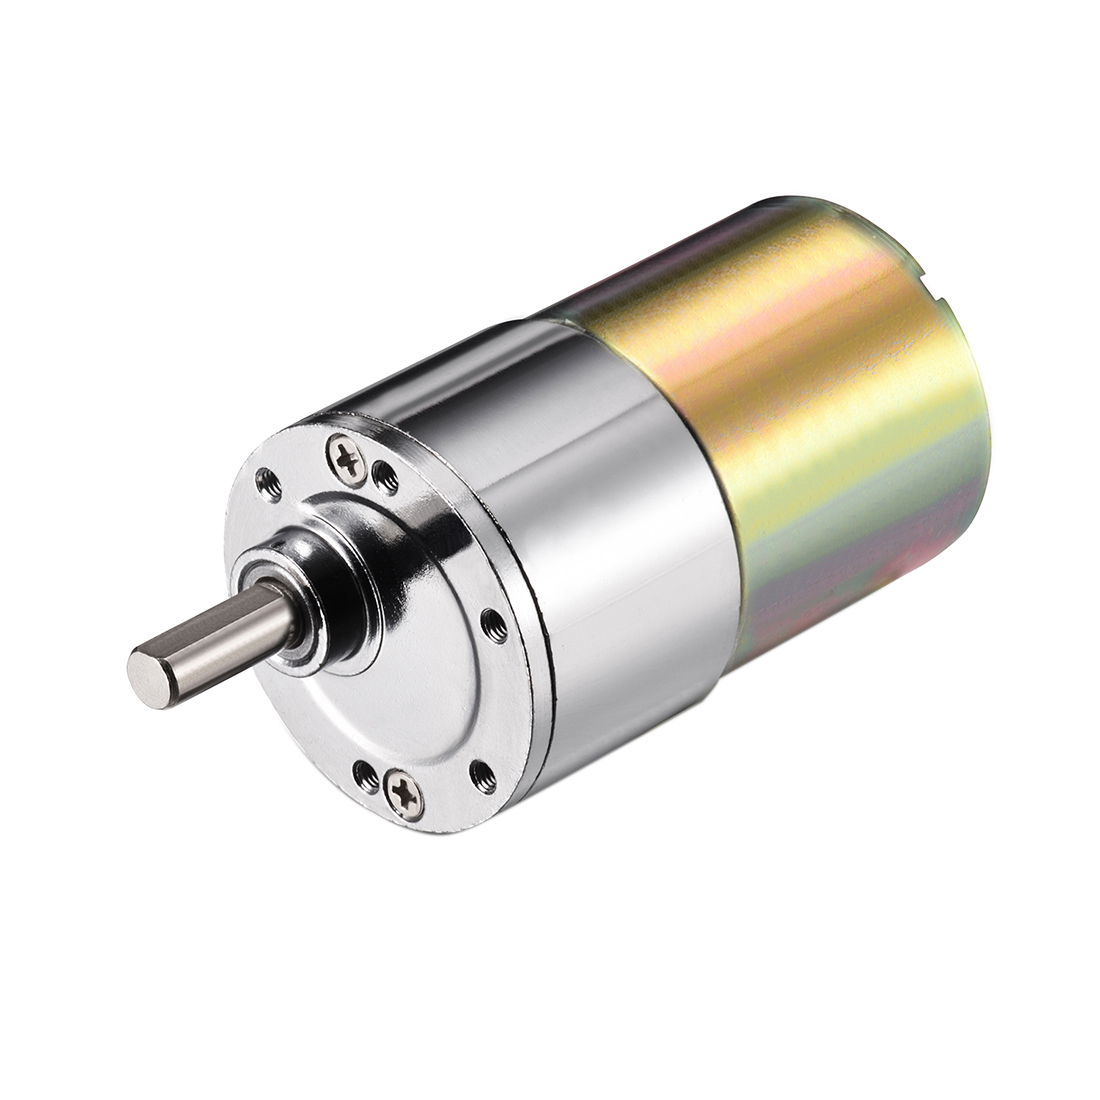 DC 12V 15RPM Micro Gear Box Motor Speed Reduction Electric Gearbox Eccentric Output Shaft